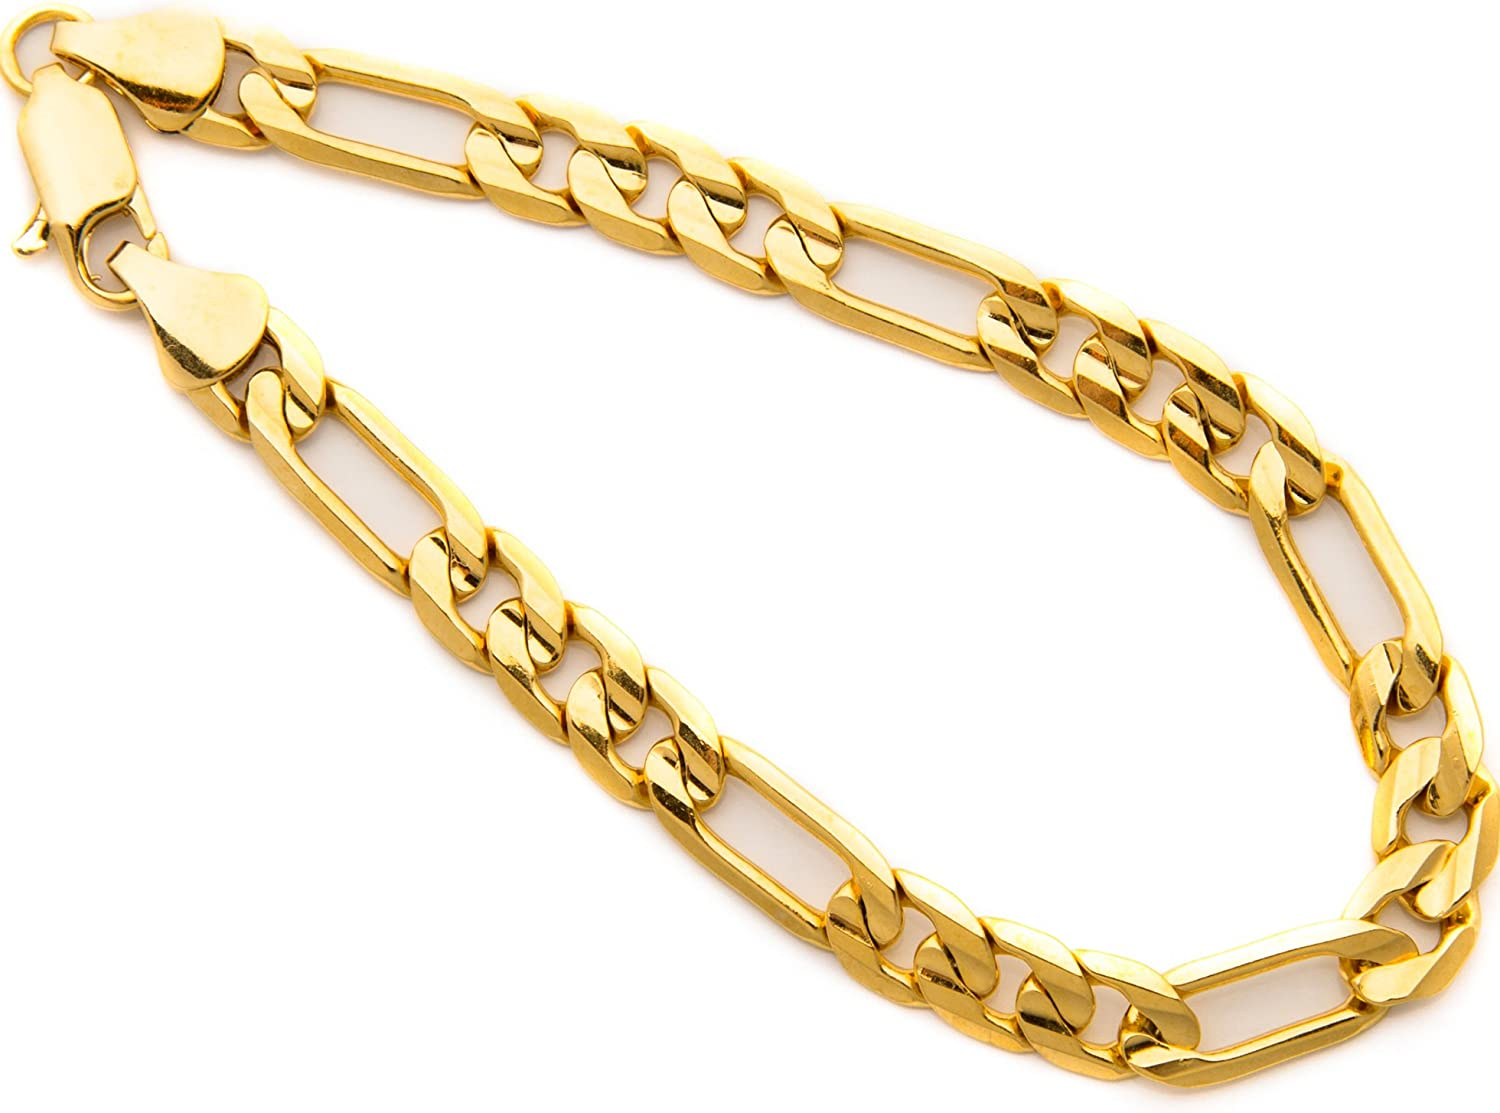 Lifetime Jewelry Diamond Cut 7mm Figaro Bracelet for Men 24k Real Gold Plated